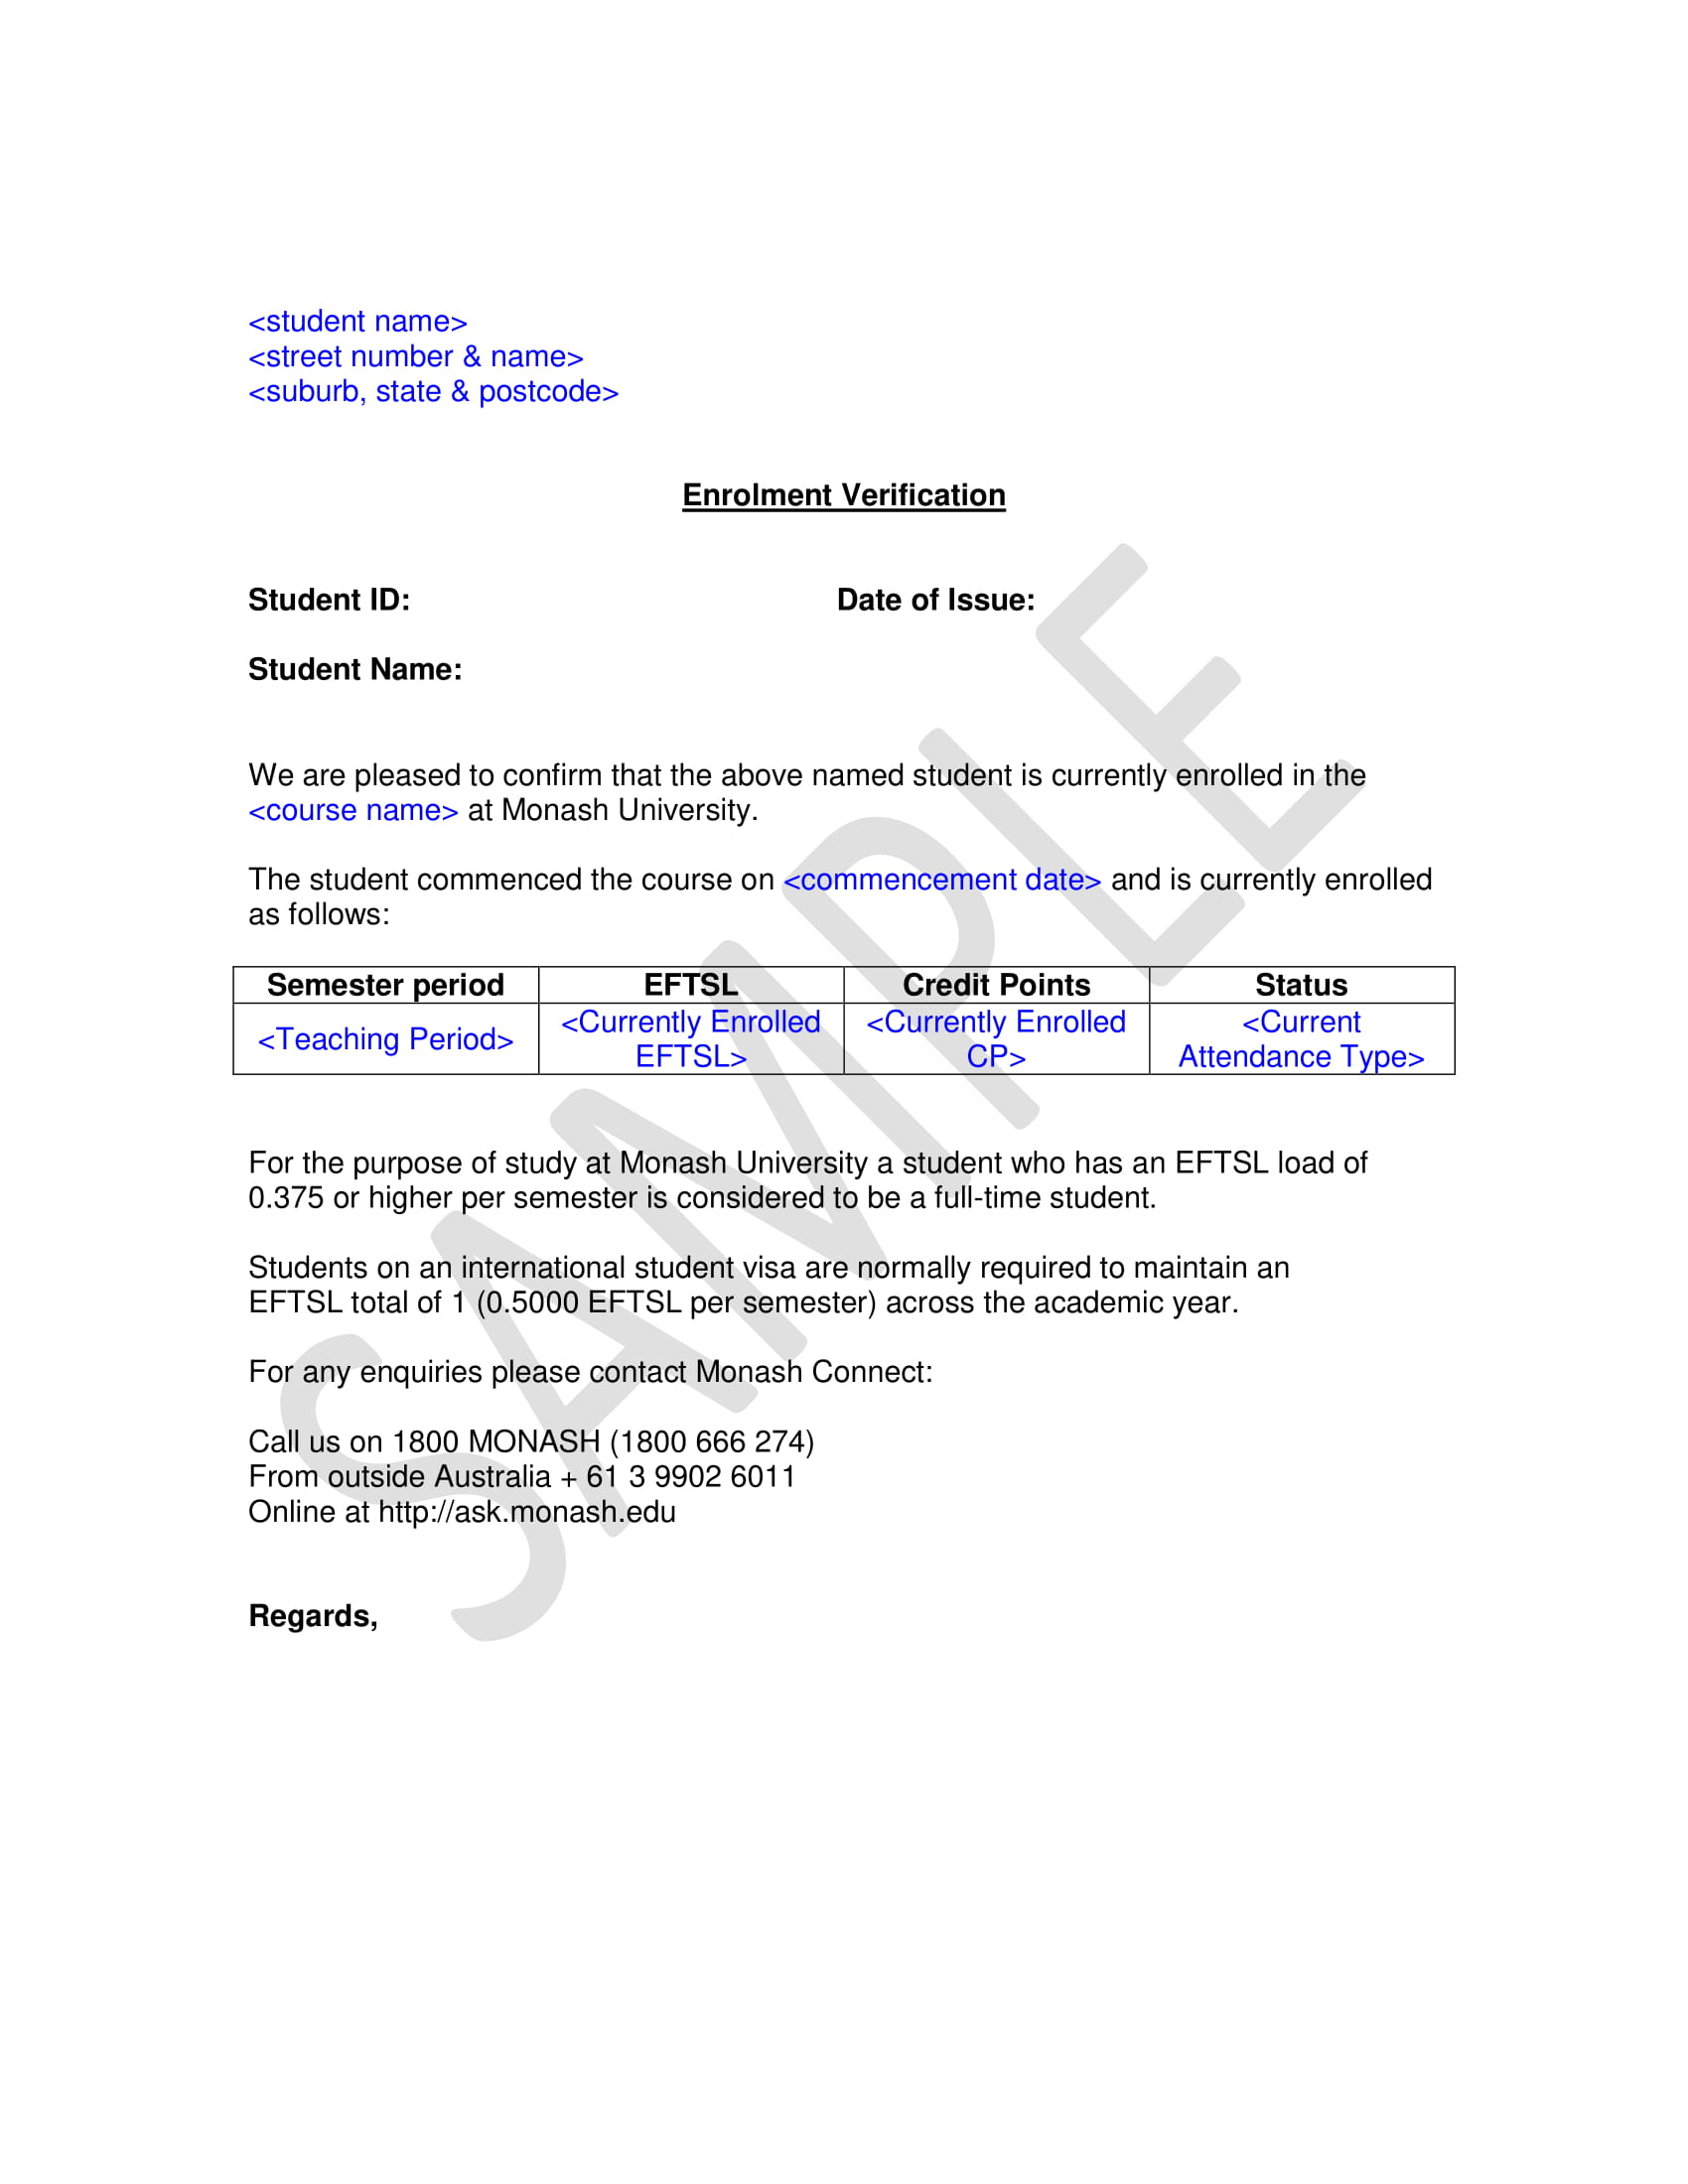 school enrollment verification letter example